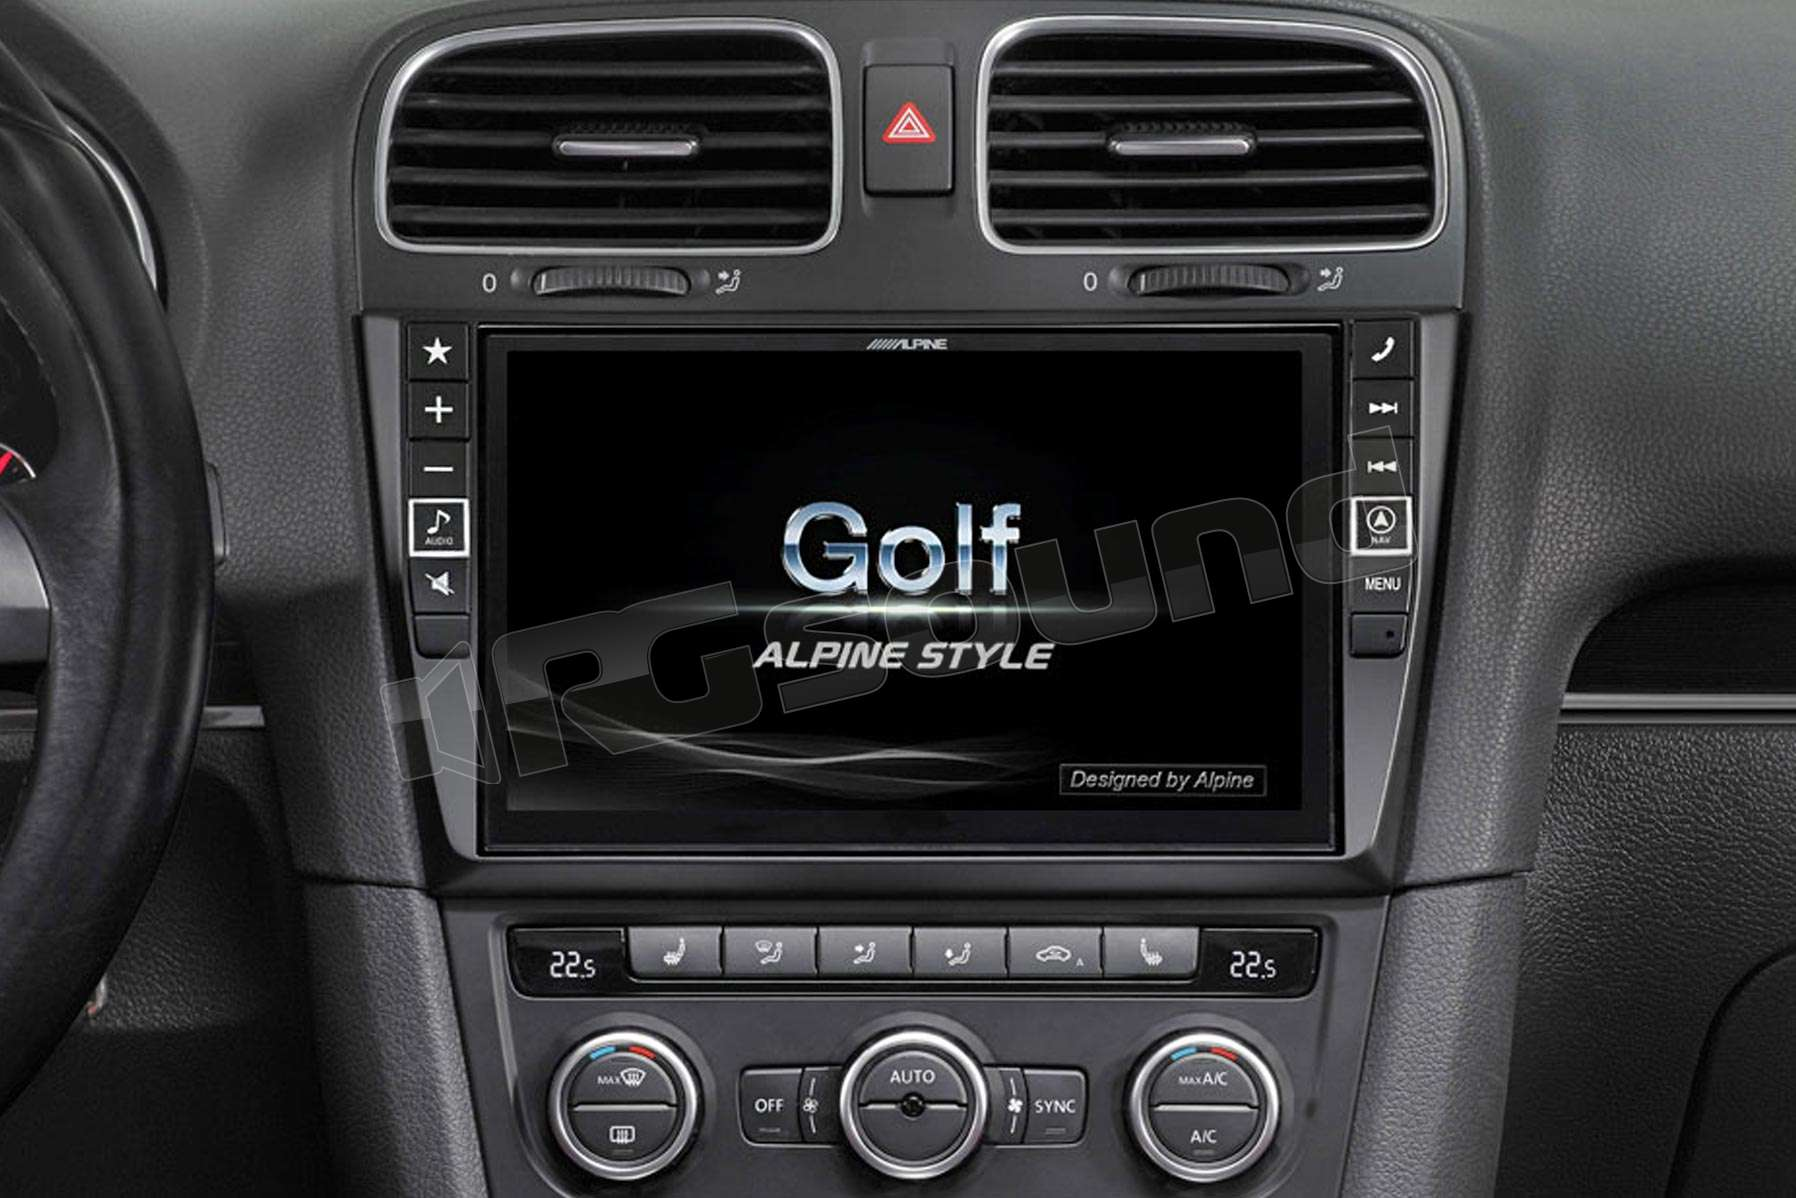 alpine x901d g6 monitor con navigazione per vw golf 6. Black Bedroom Furniture Sets. Home Design Ideas